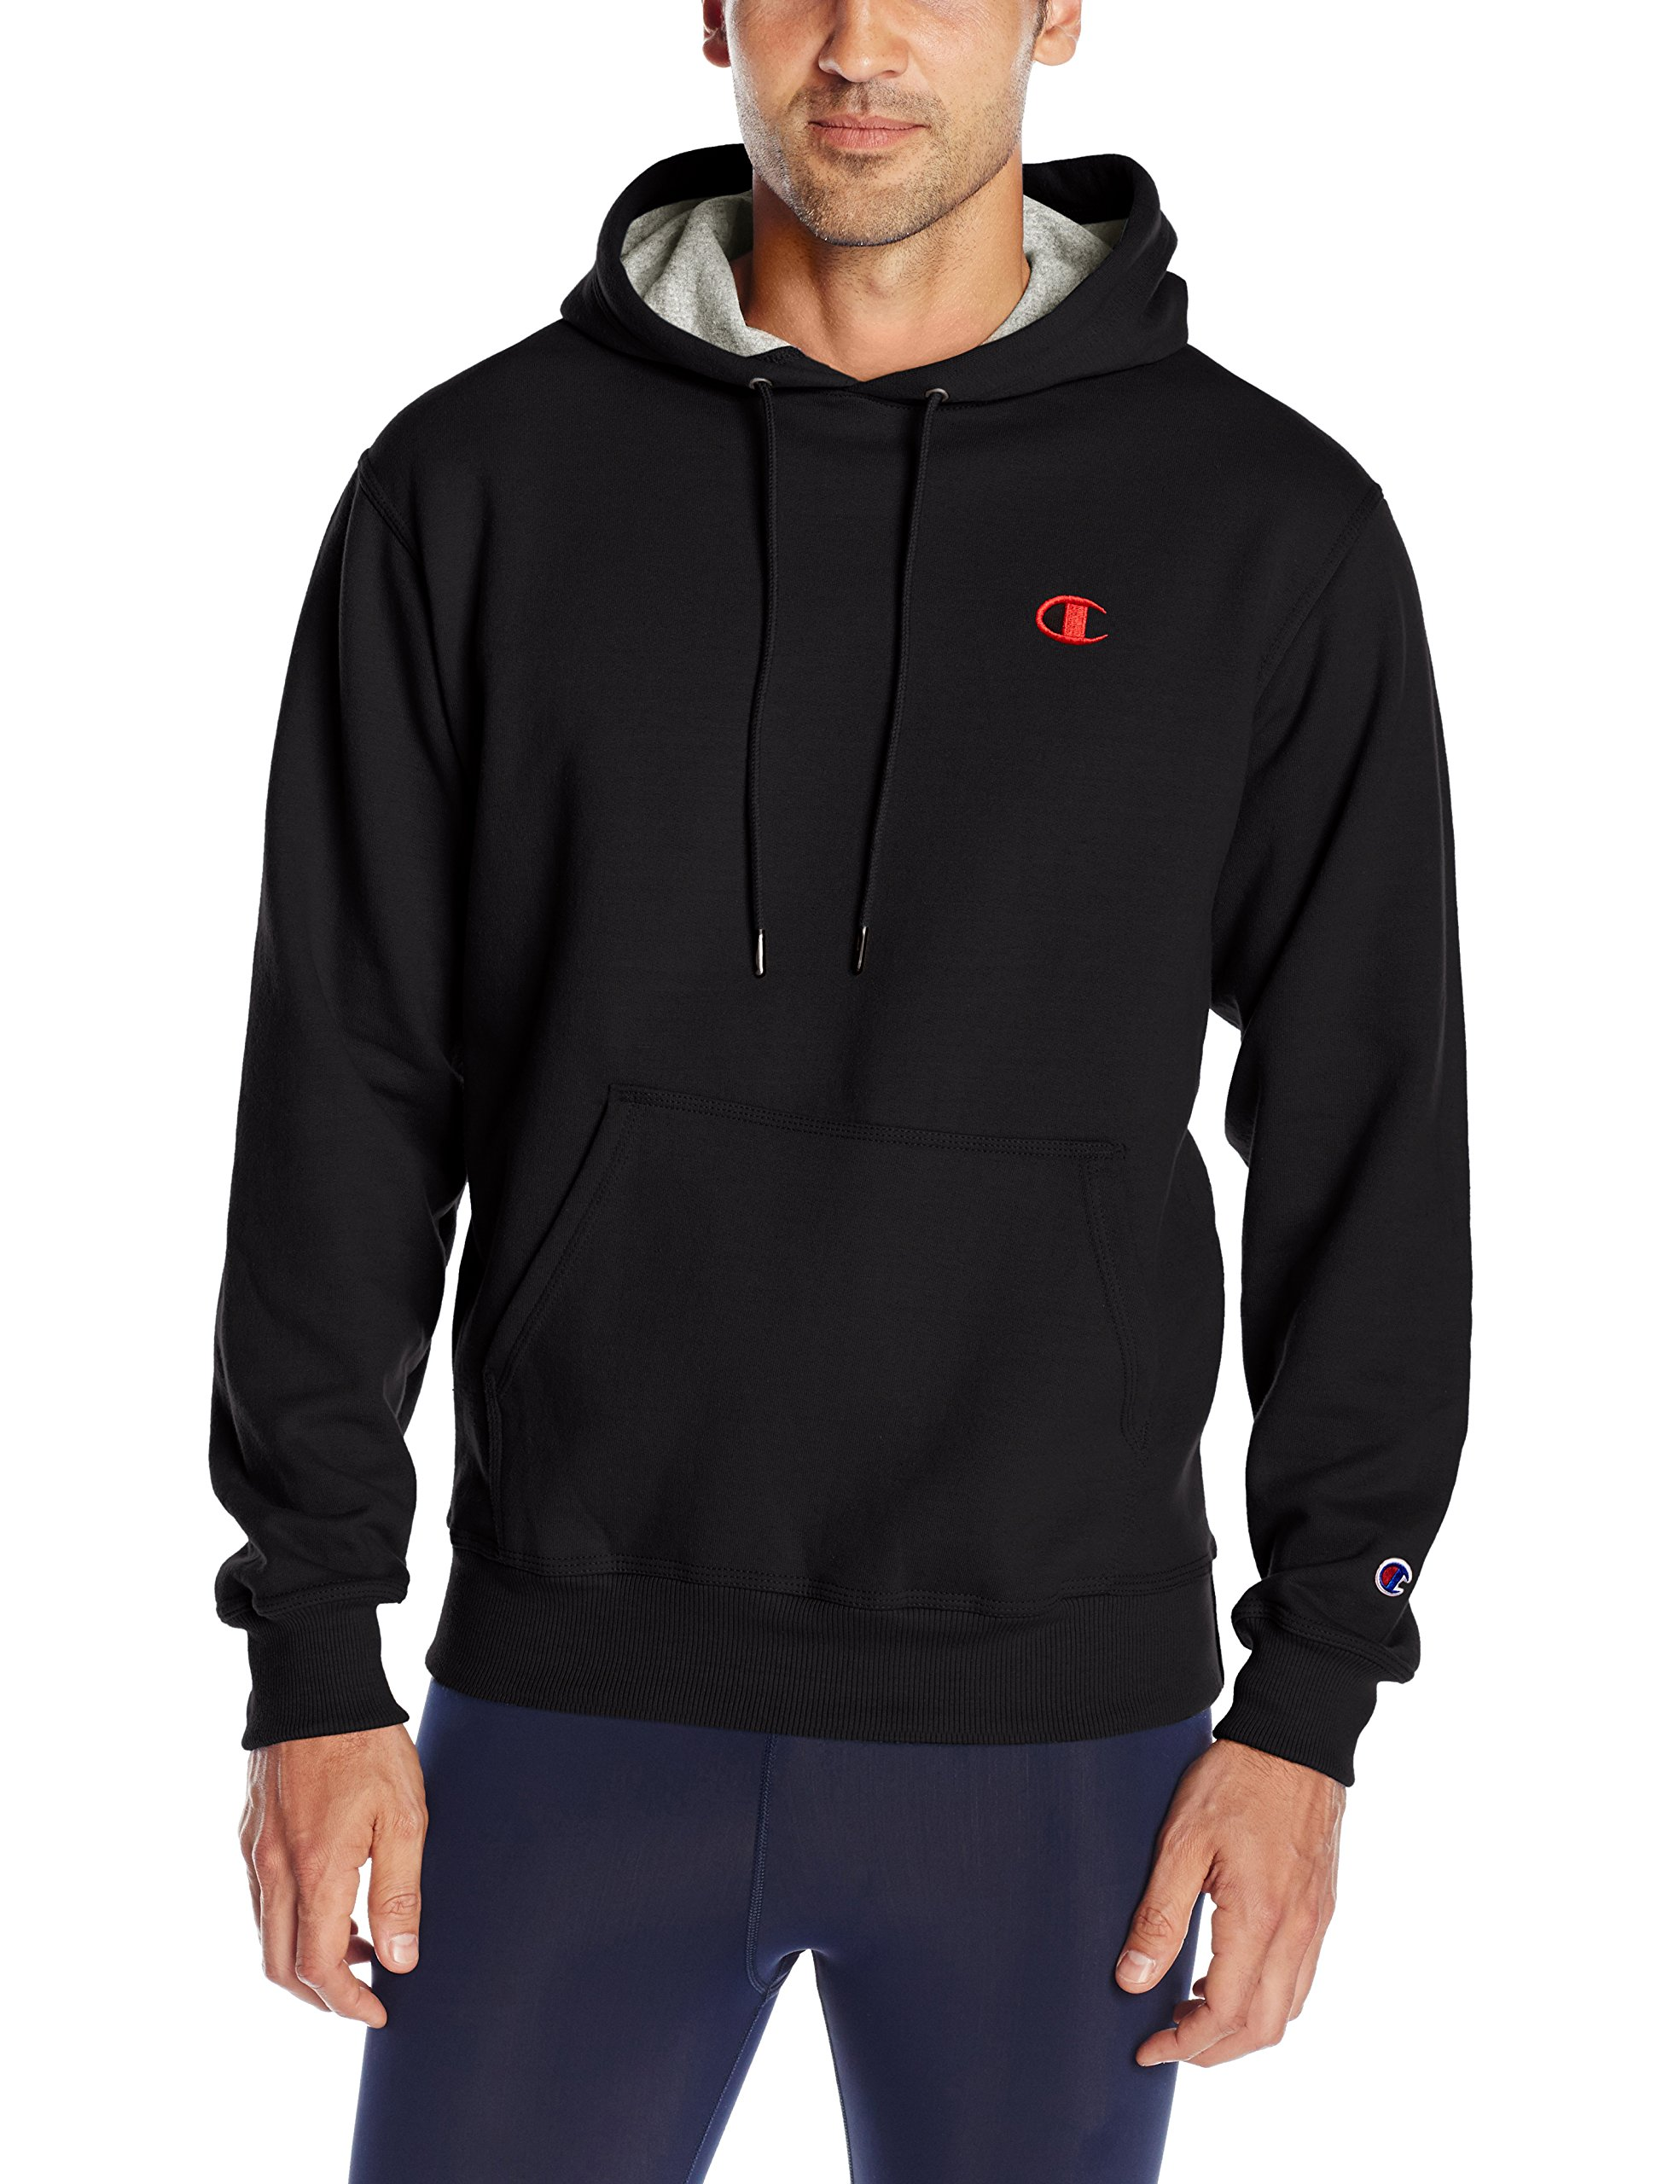 Champion Men's Powerblend Pullover Hoodie, Black/Team red Scarlet Embroidered c Logo, XX-Large by Champion